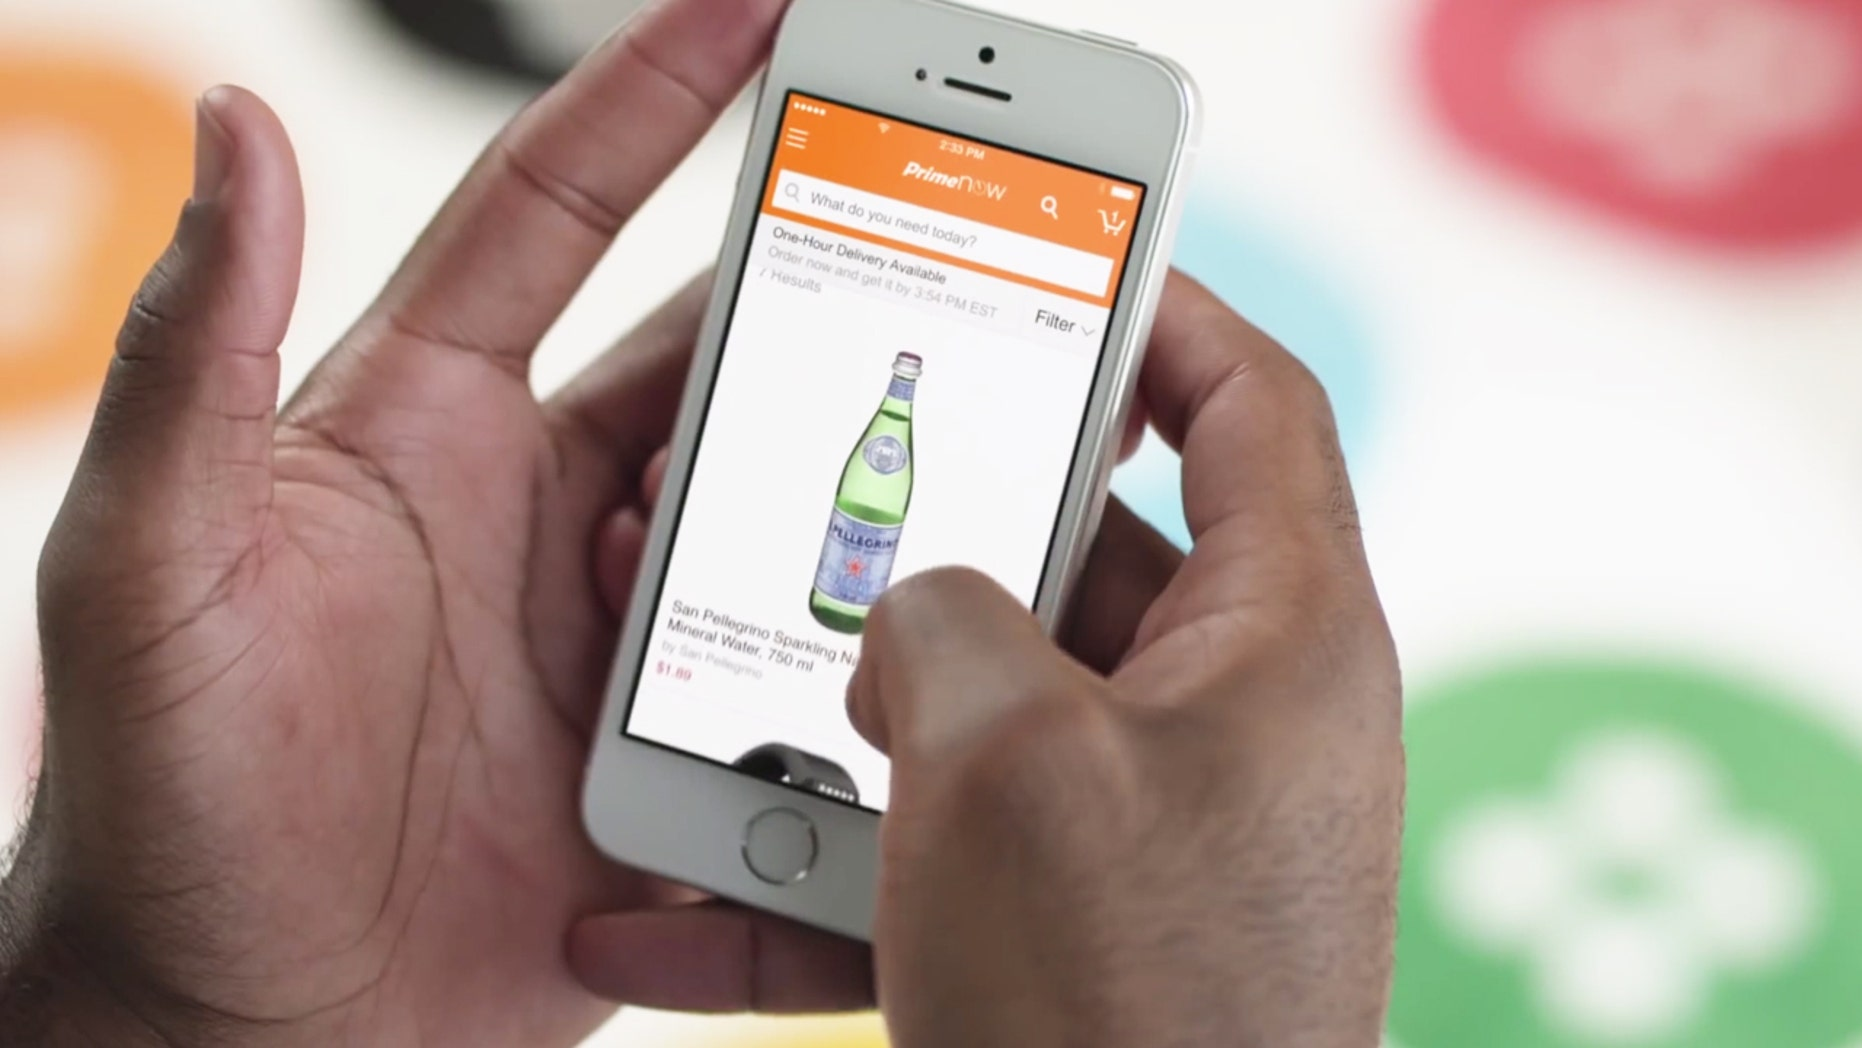 Amazon's Prime Now service is now extending to restaurant delivery.